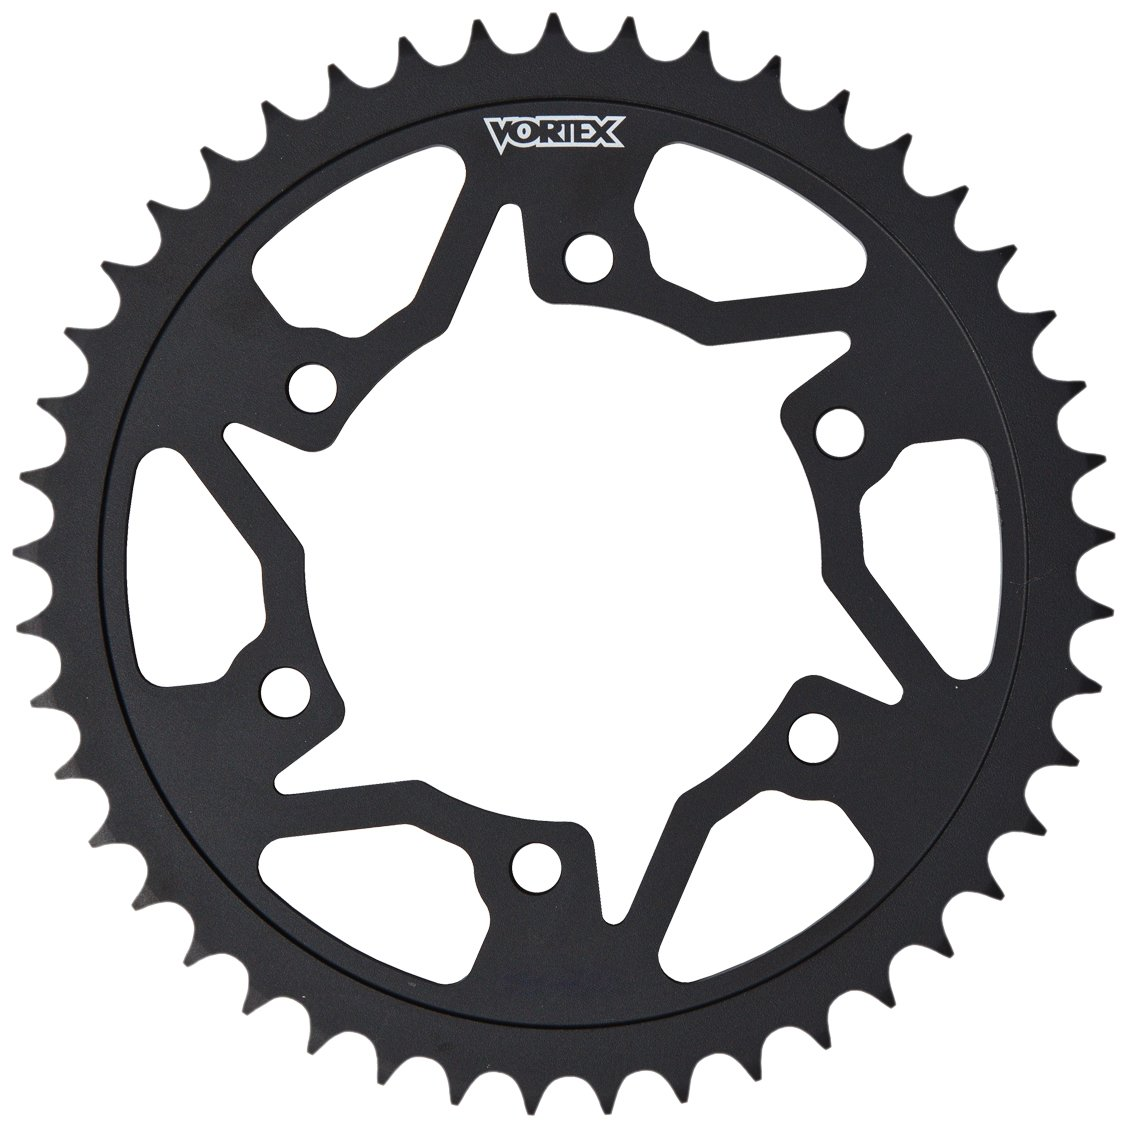 Vortex 252S-46 Black 46-Tooth 525-Pitch Steel Rear Sprocket